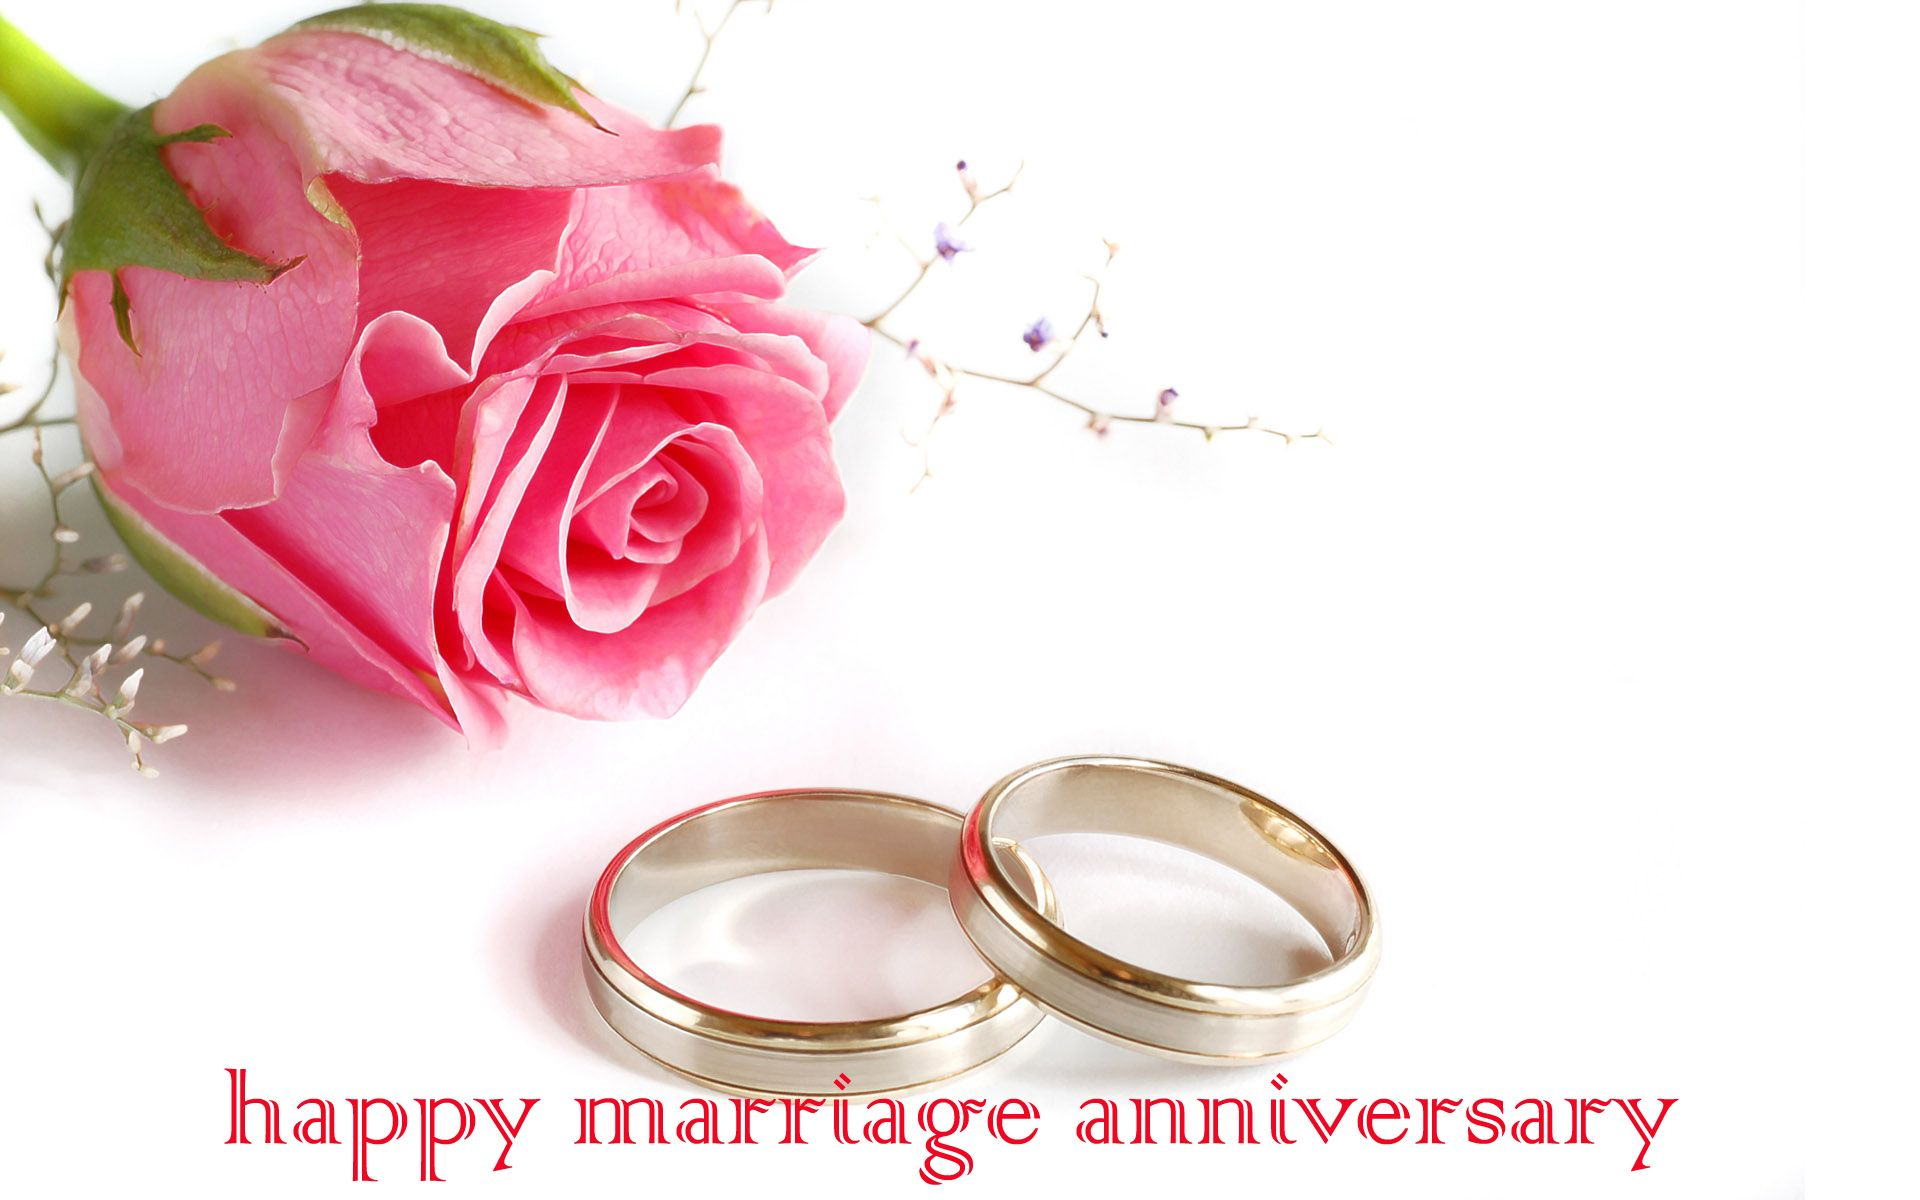 Wedding Anniversary HD Wallpapers